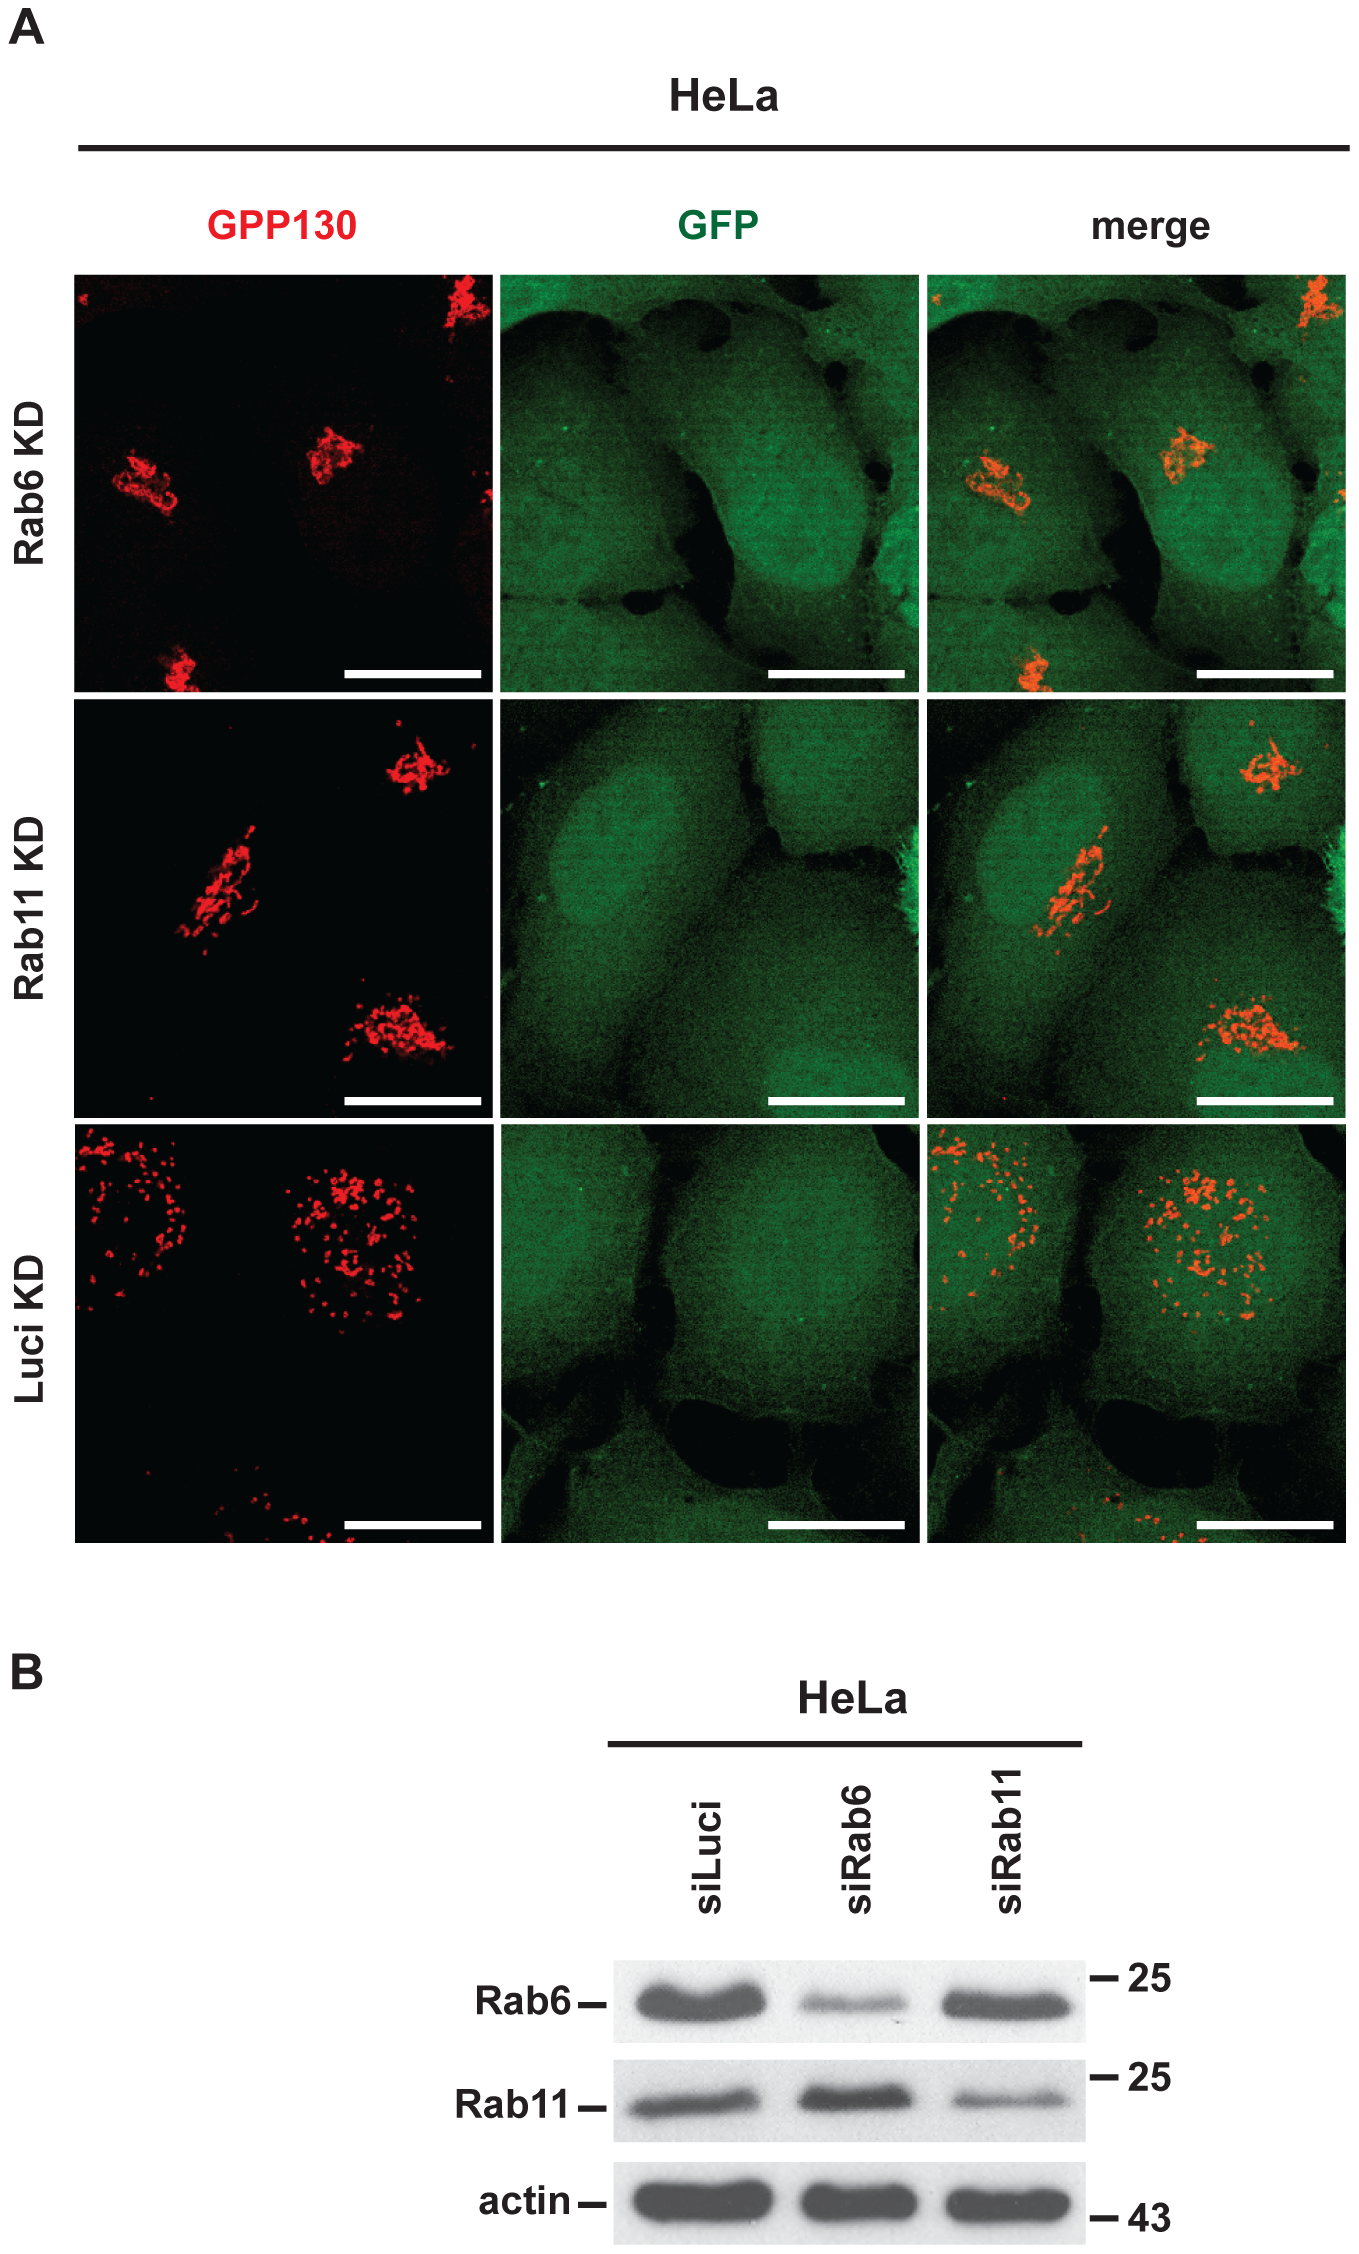 CPAF-induced Golgi fragmentation is Rab6A- and Rab11A-dependent in HeLa cells transiently expressing active CPAF.